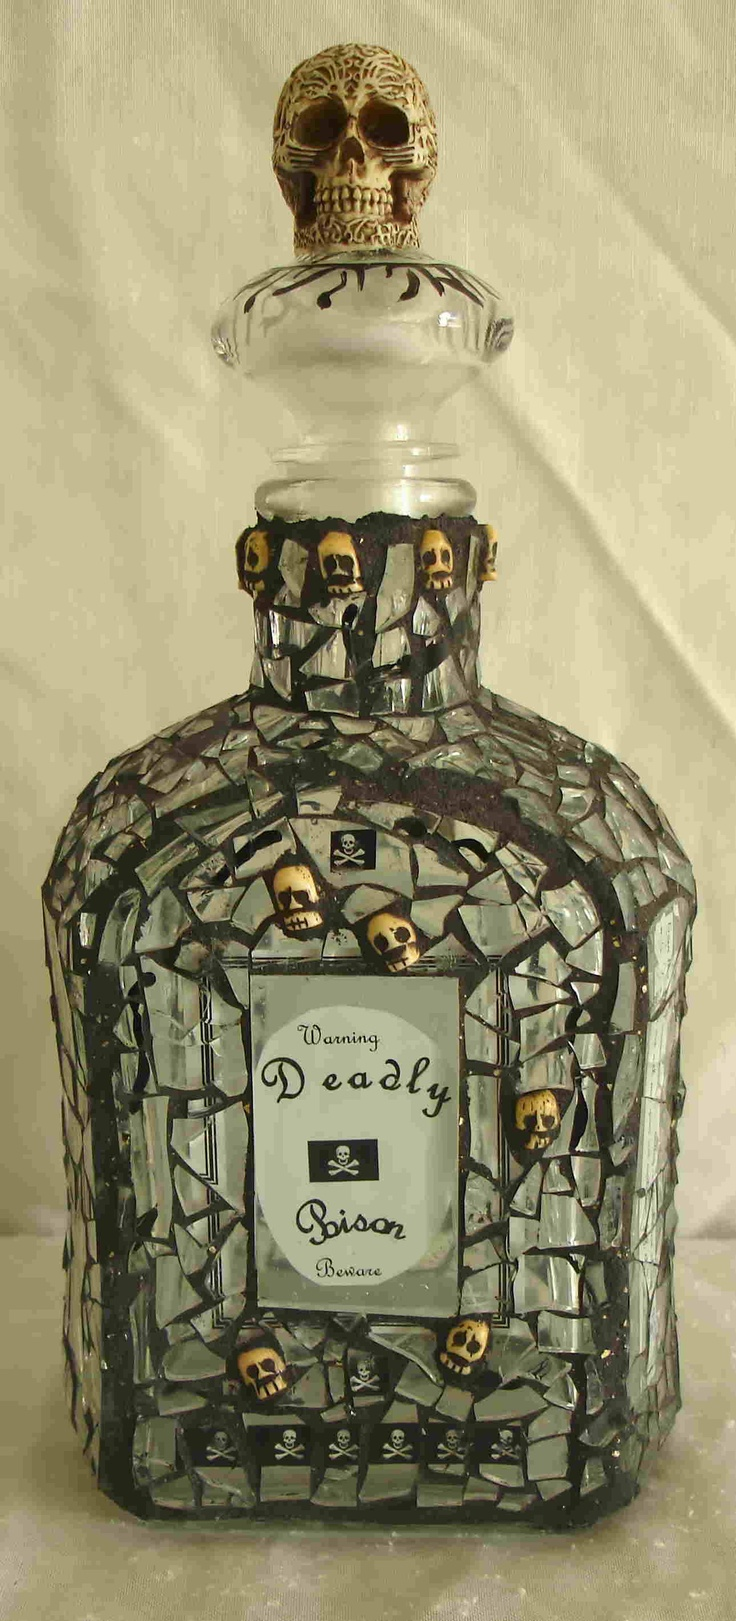 mirrored mosaic bottle @Celia Lynch this one would interest you?